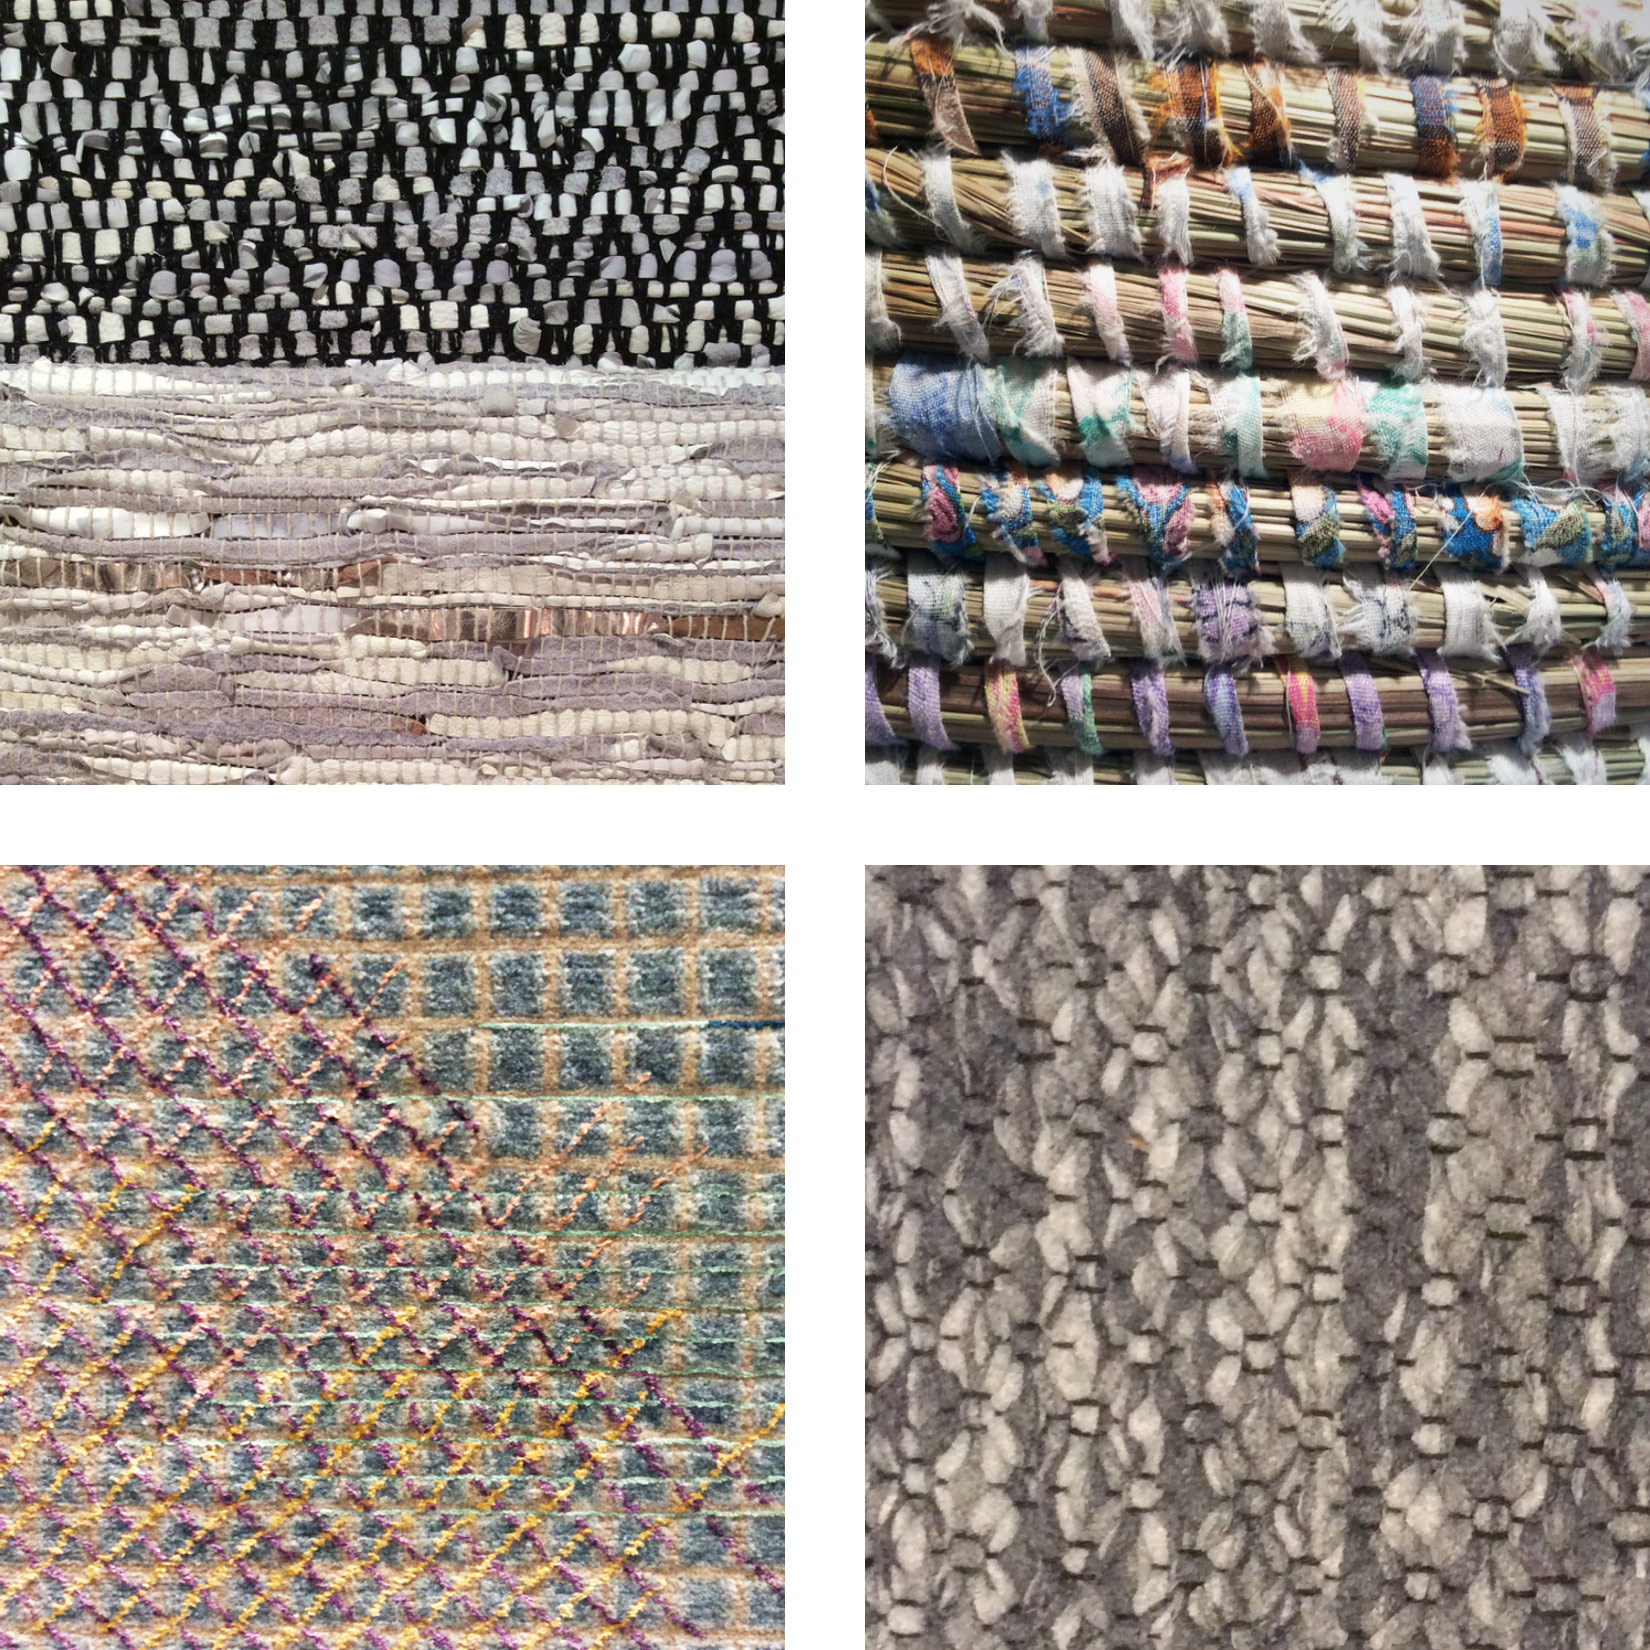 Heavy, rustic textures with plenty of organic variation were seen in rugs and baskets.